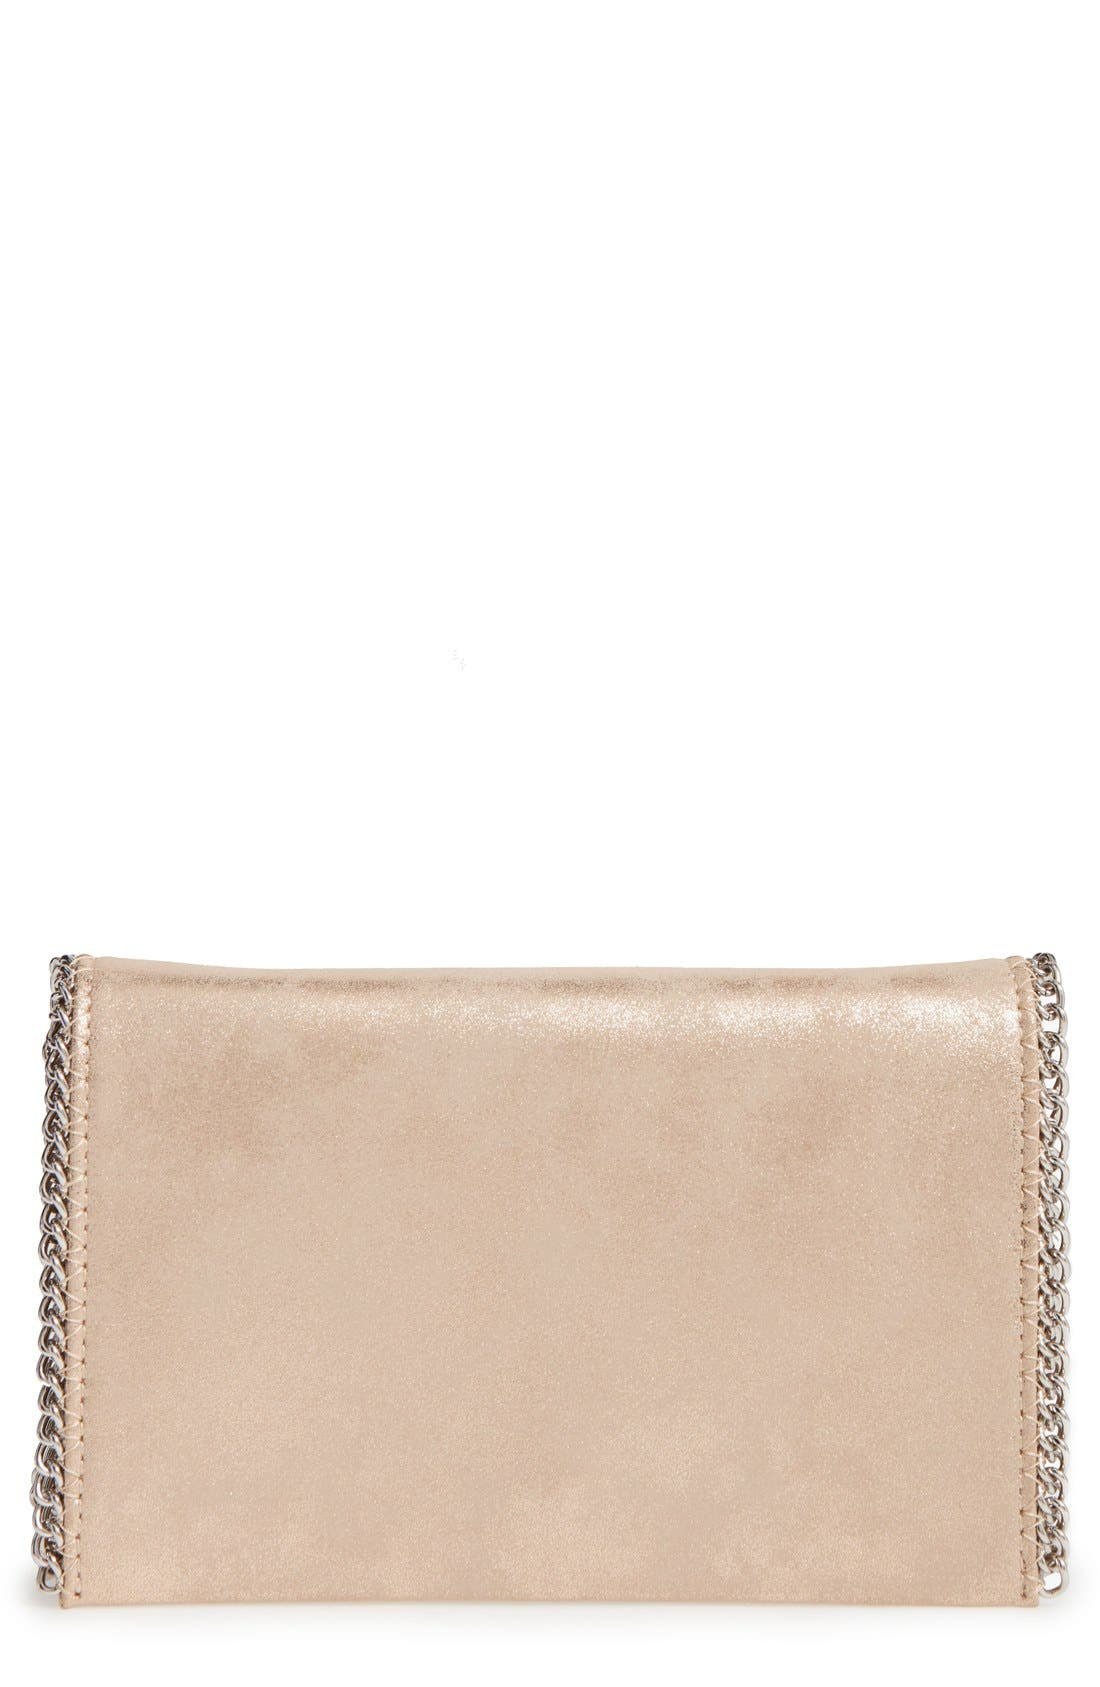 Main Image - Chelsea28 Faux Leather Clutch